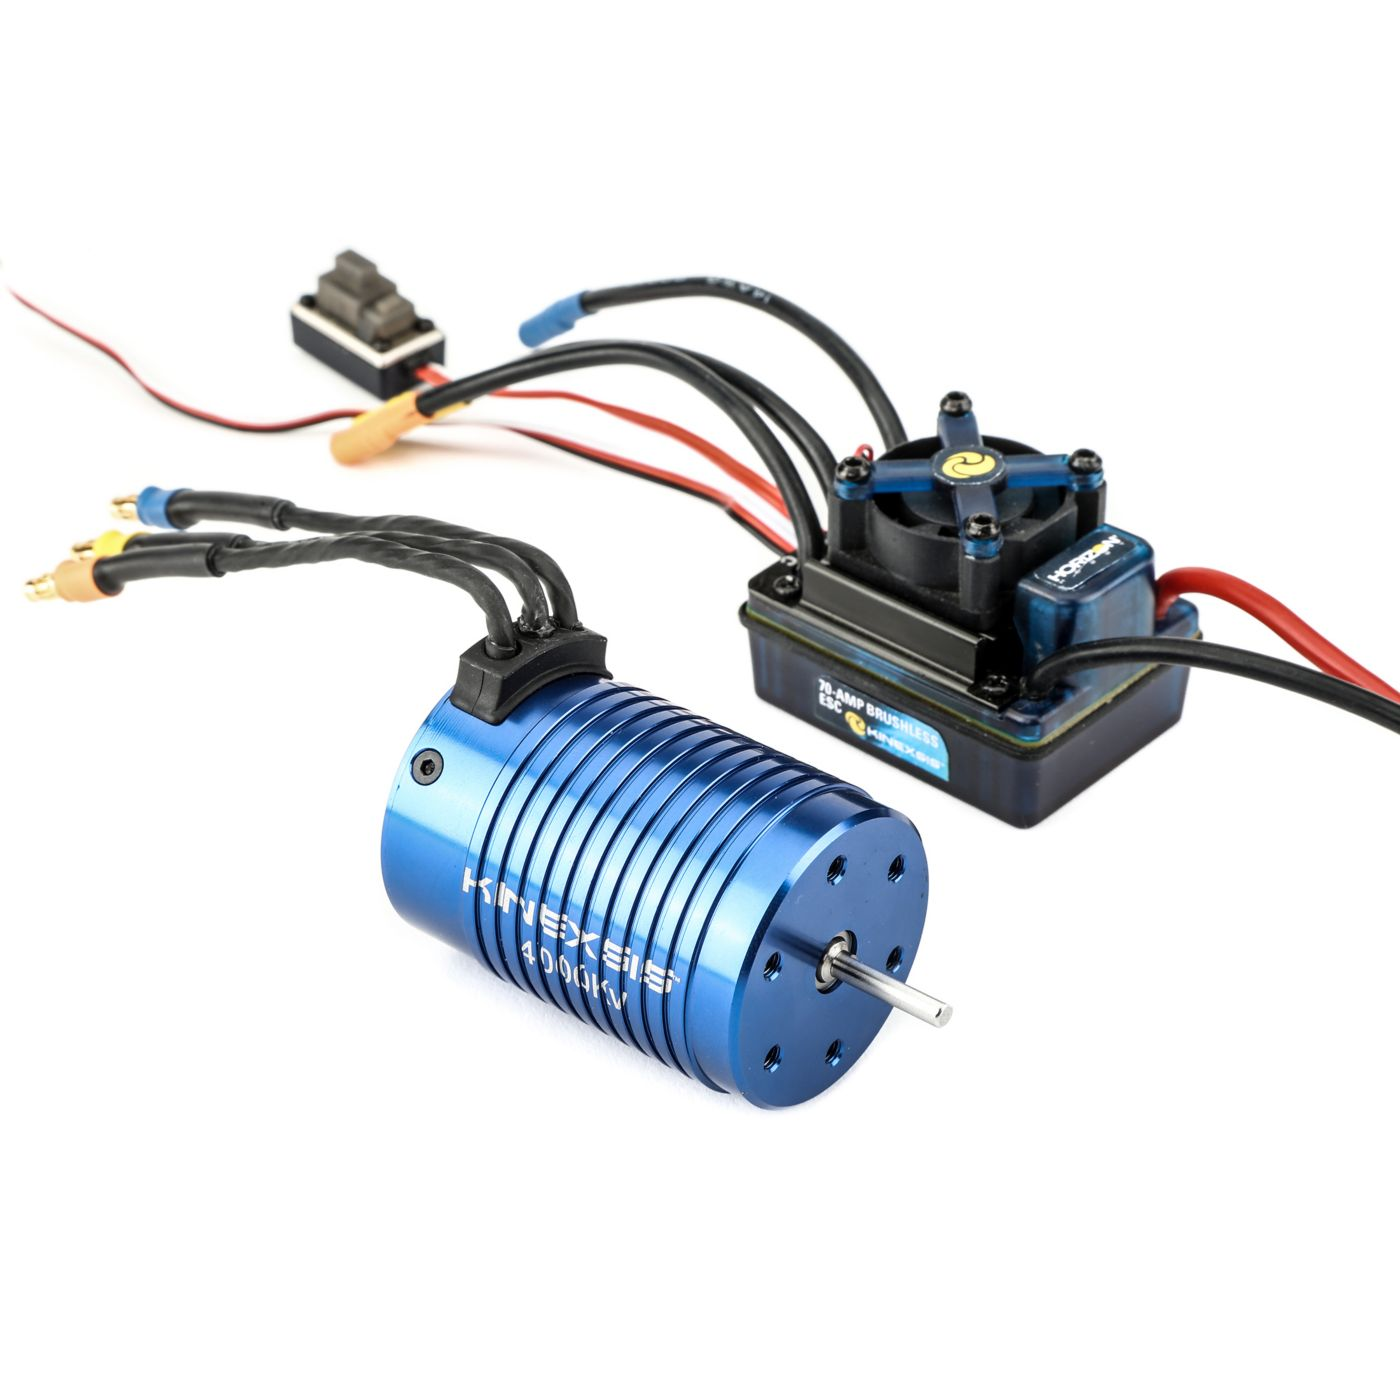 hight resolution of image for 1 10 4 pole 4000kv esc motor combo from horizonhobby